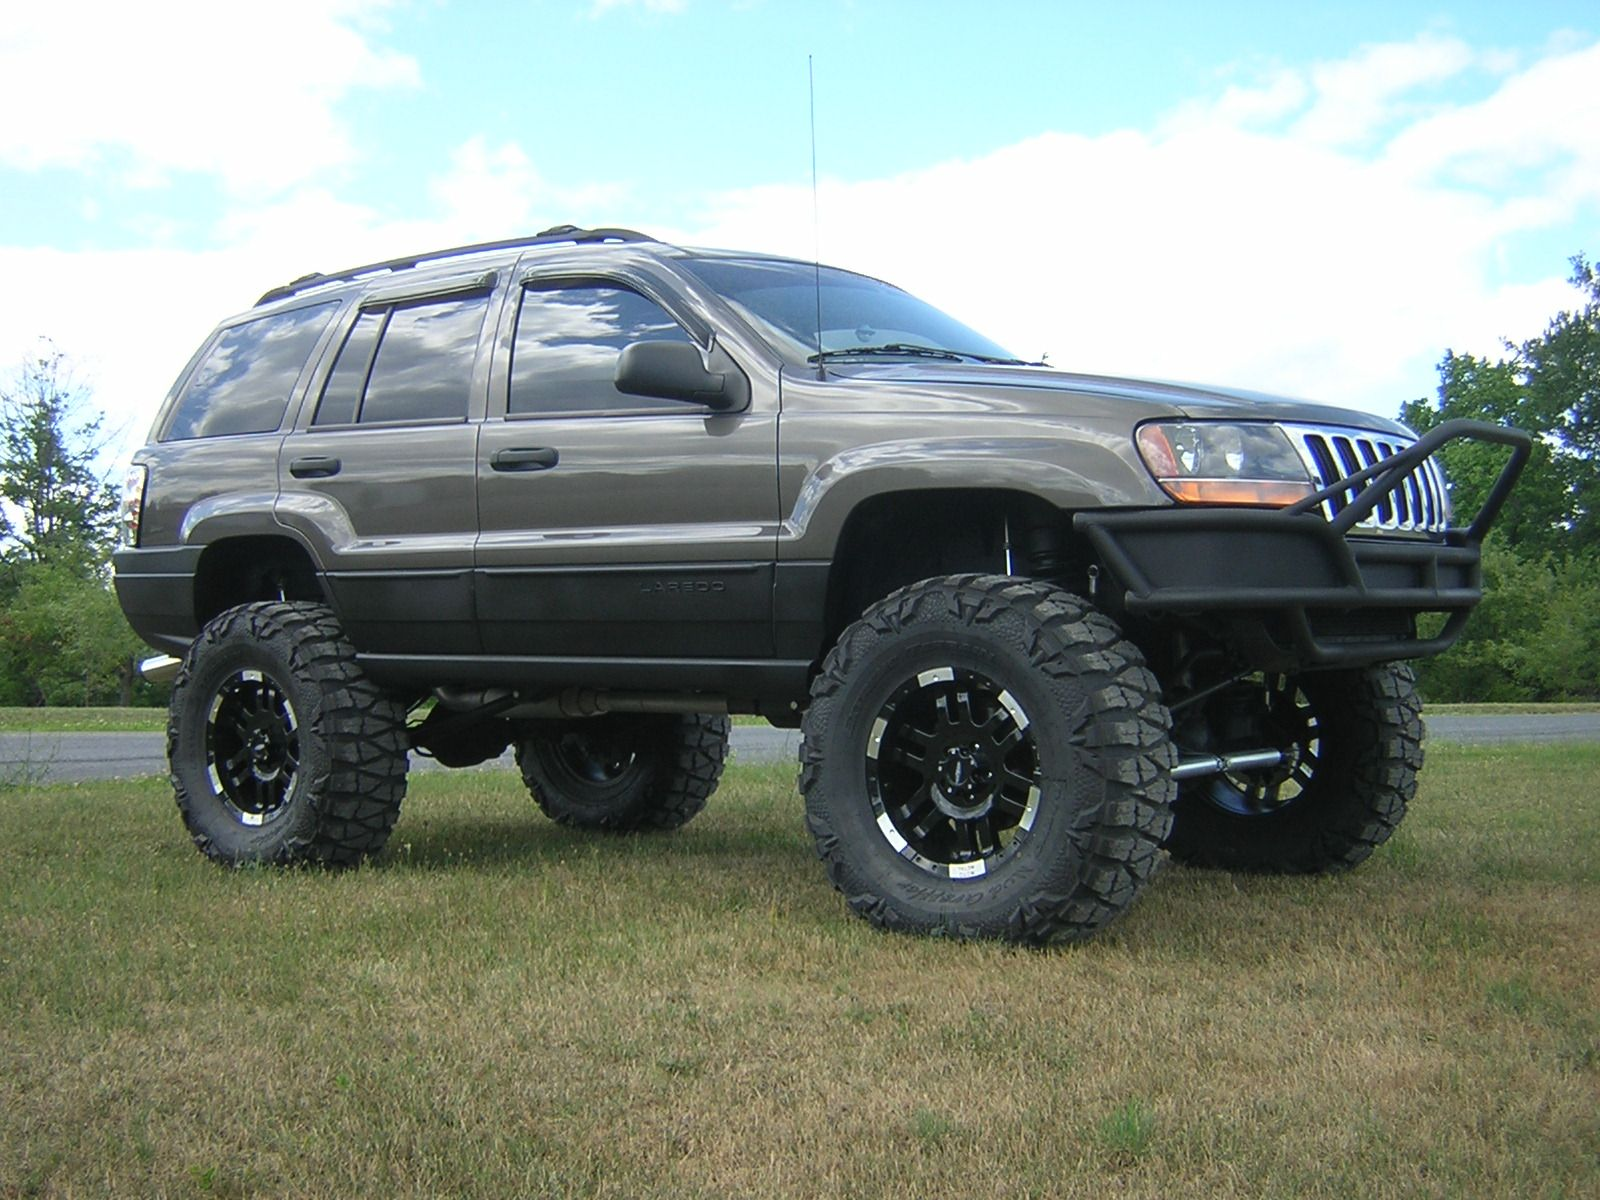 2000 Jeep Grand Cherokee Lifted Want These Wheels Tiressss